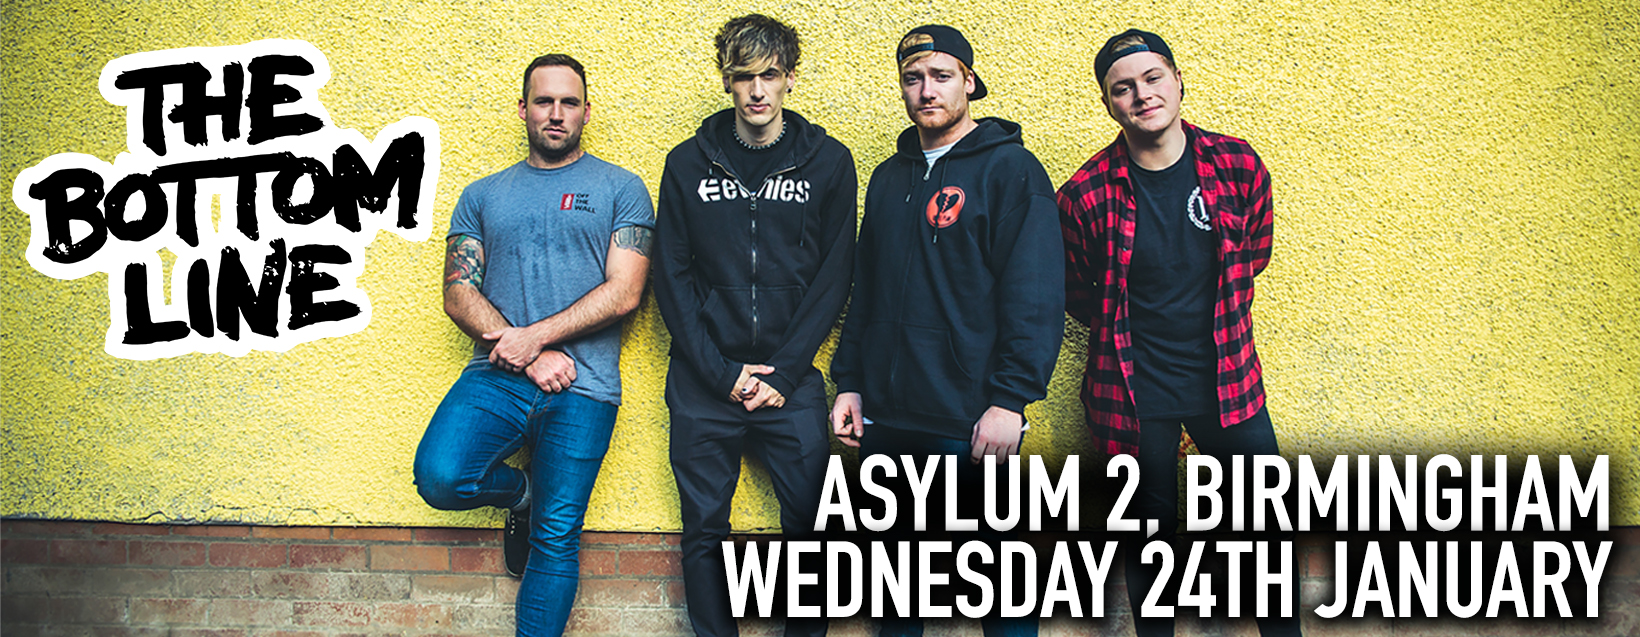 The Bottom Line @ The Asylum (2) 24.01.18